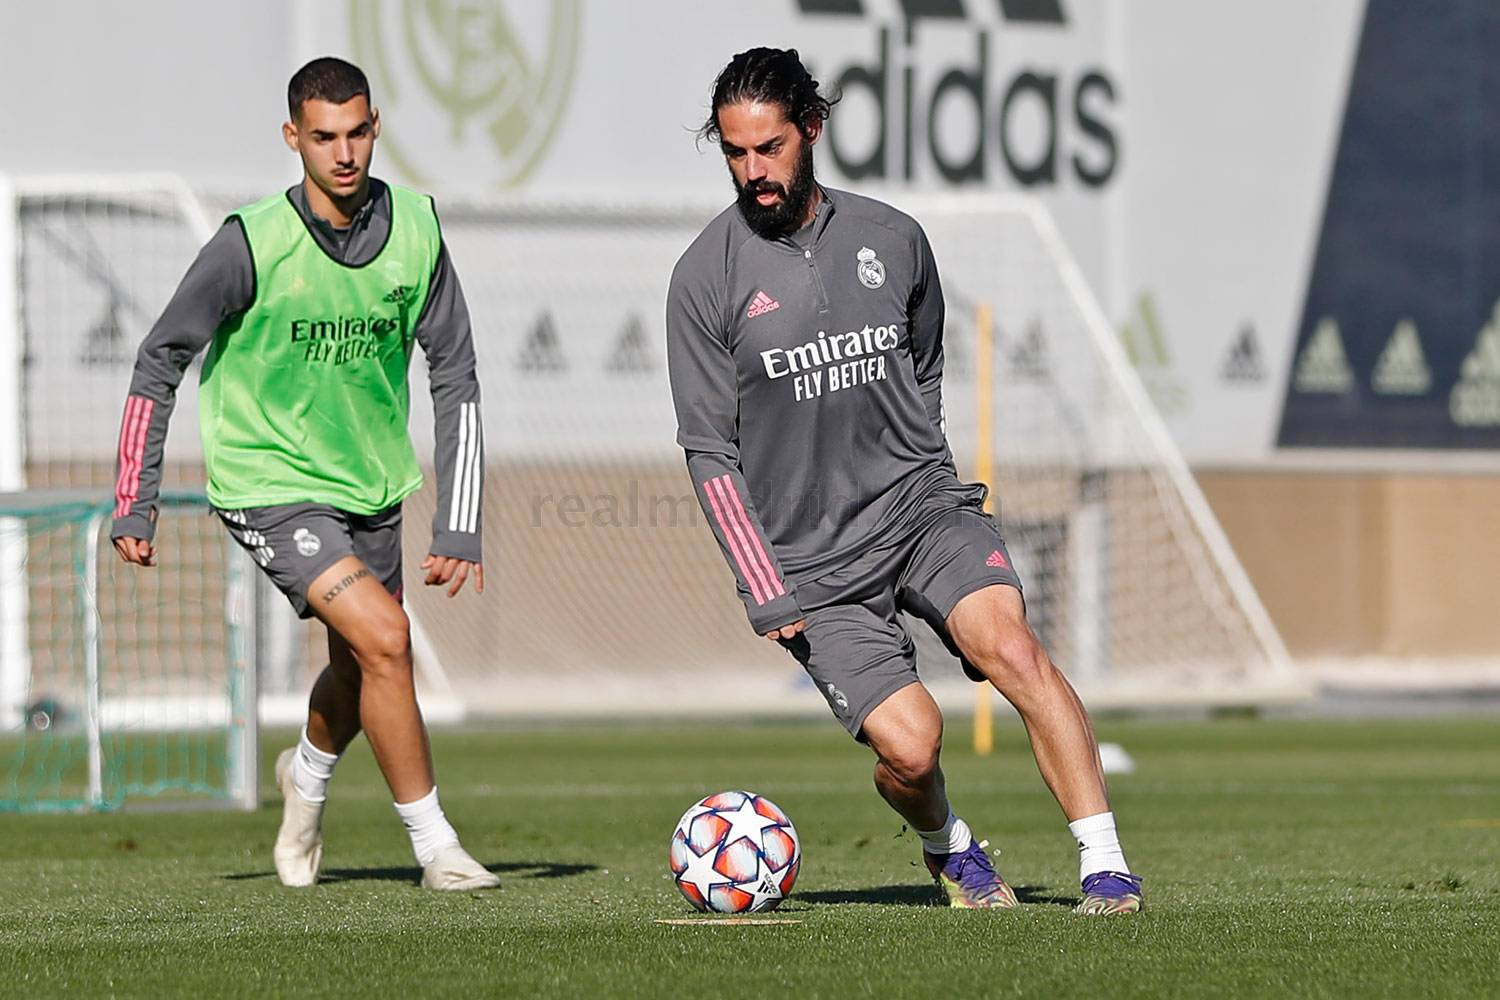 Real Madrid - Entrenamiento del Real Madrid  - 22-11-2020